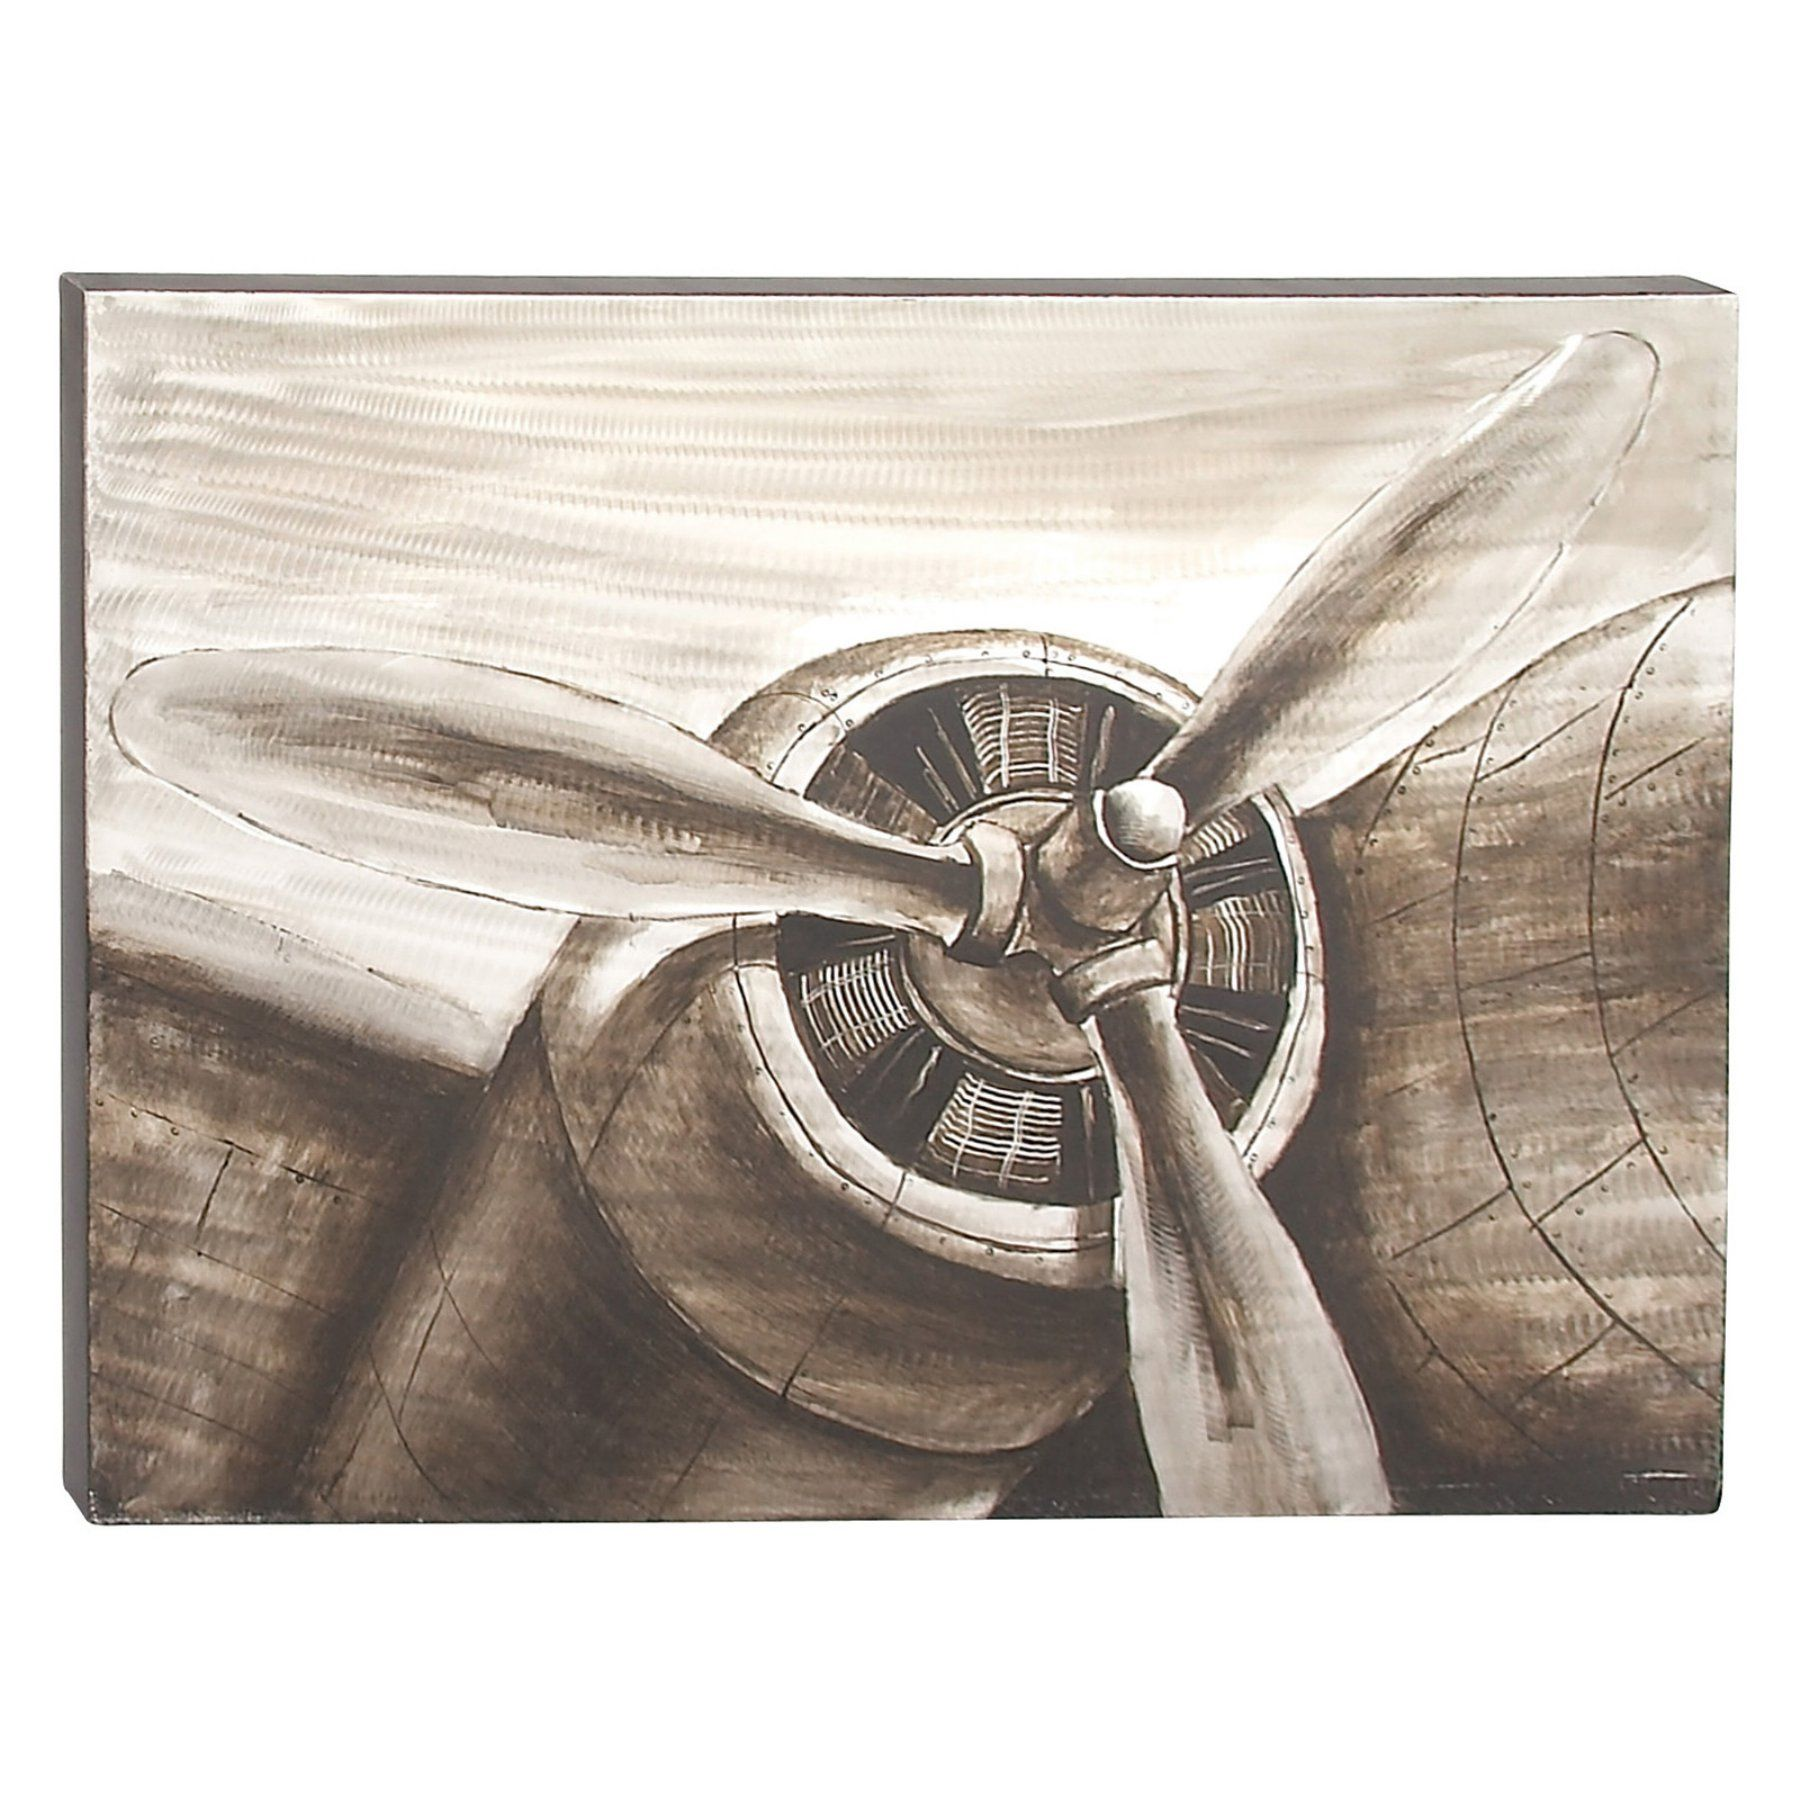 Decmode Vintage Airplane Propeller Wall Art 43980 Airplane Wall Art Airplane Art Propeller Wall Art